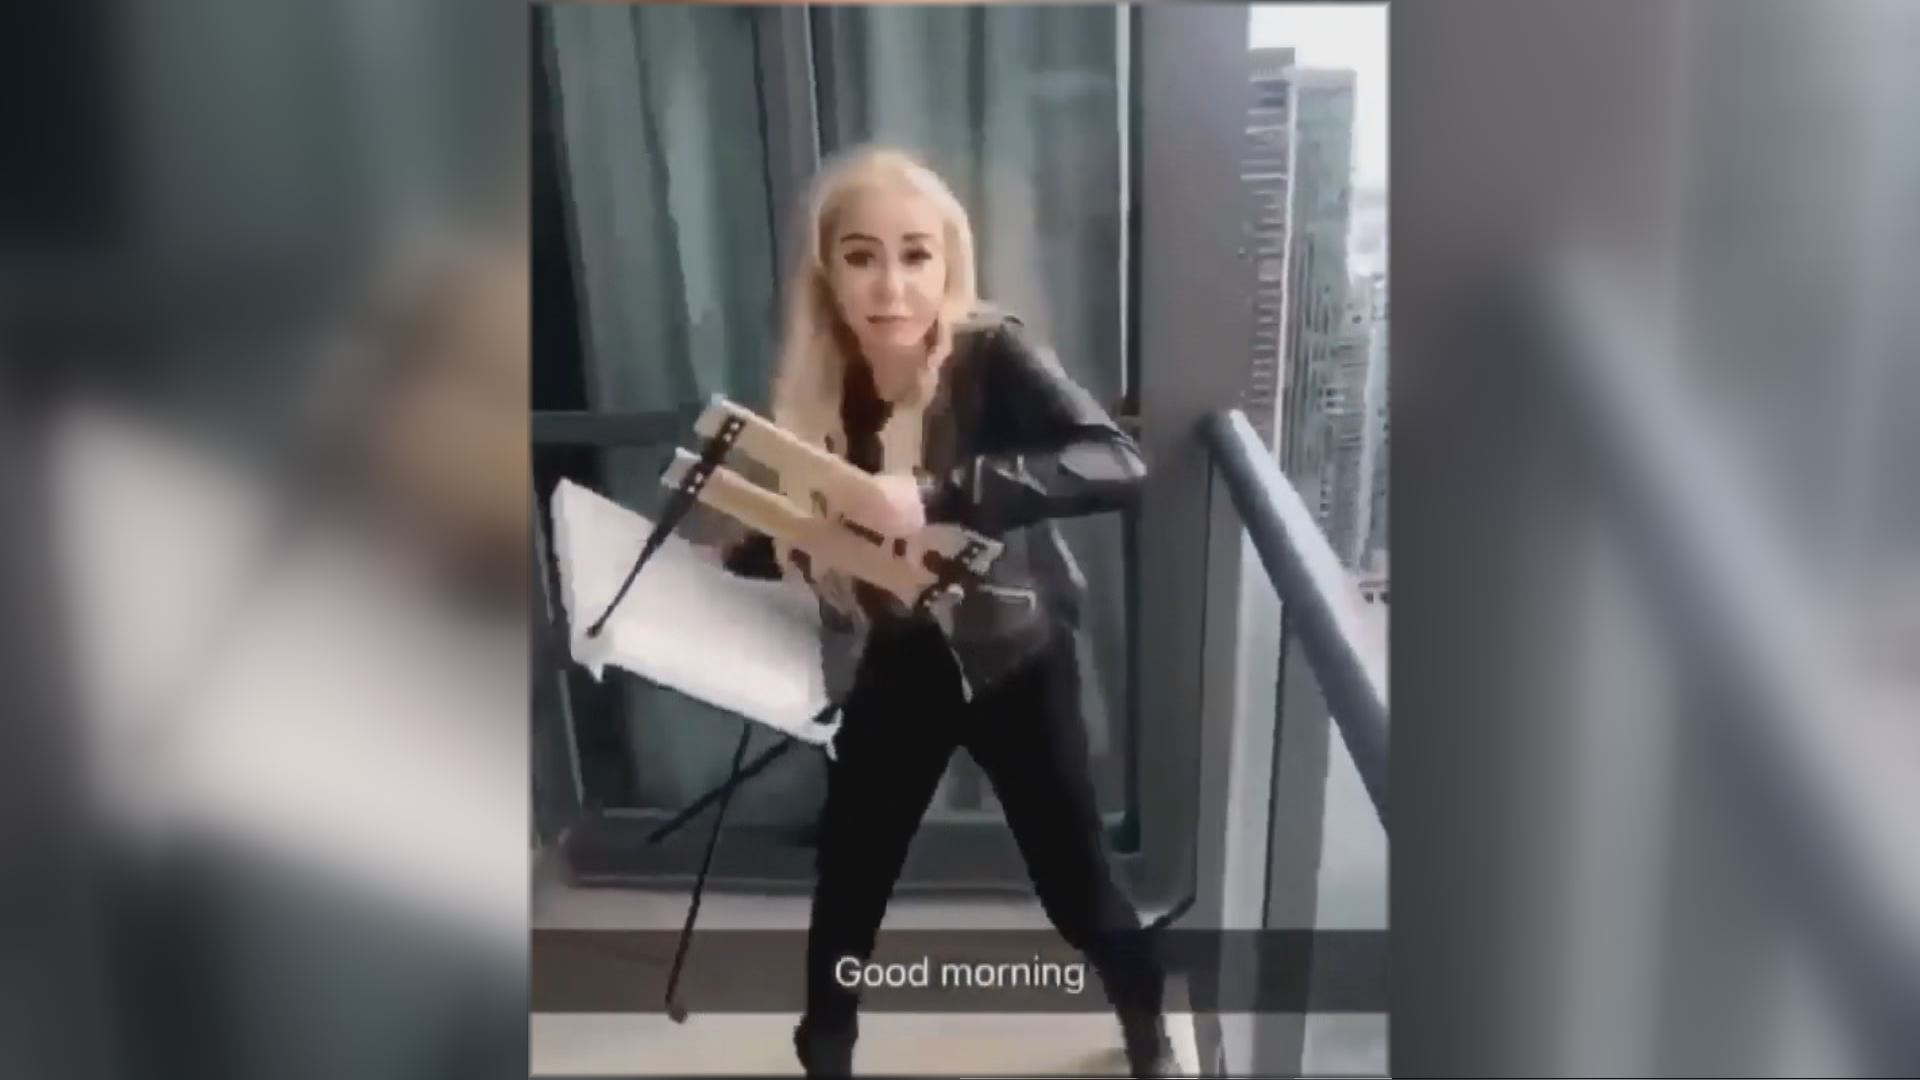 Police investigating video of woman throwing chair off condo balcony